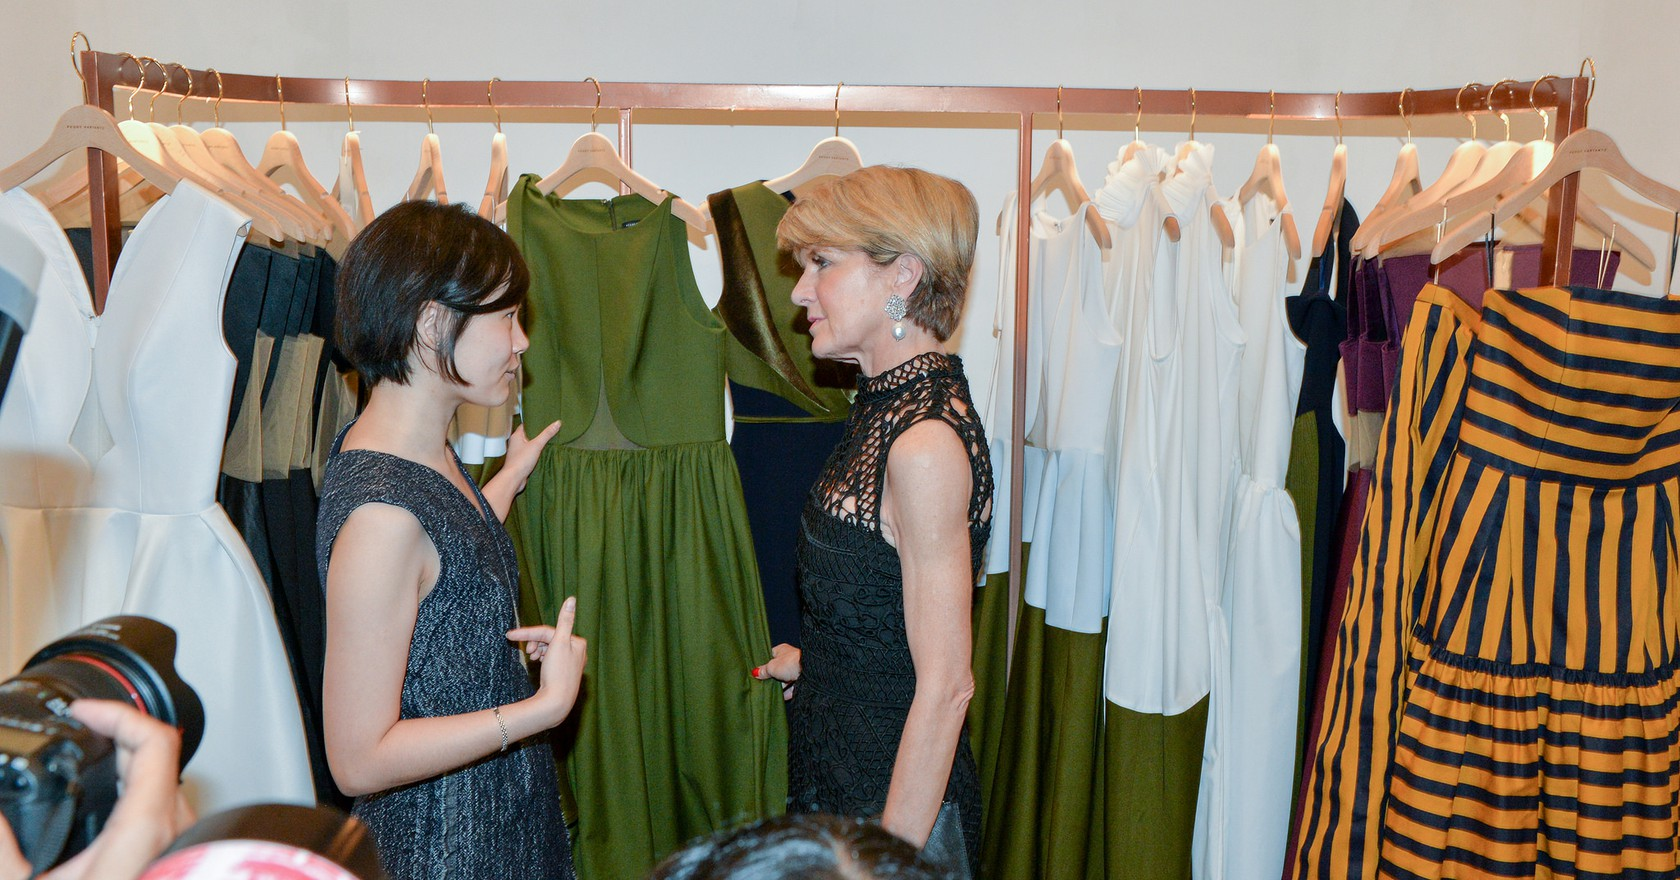 Richest Clothing Designer | 10 Indonesian Fashion Designers You Should Know